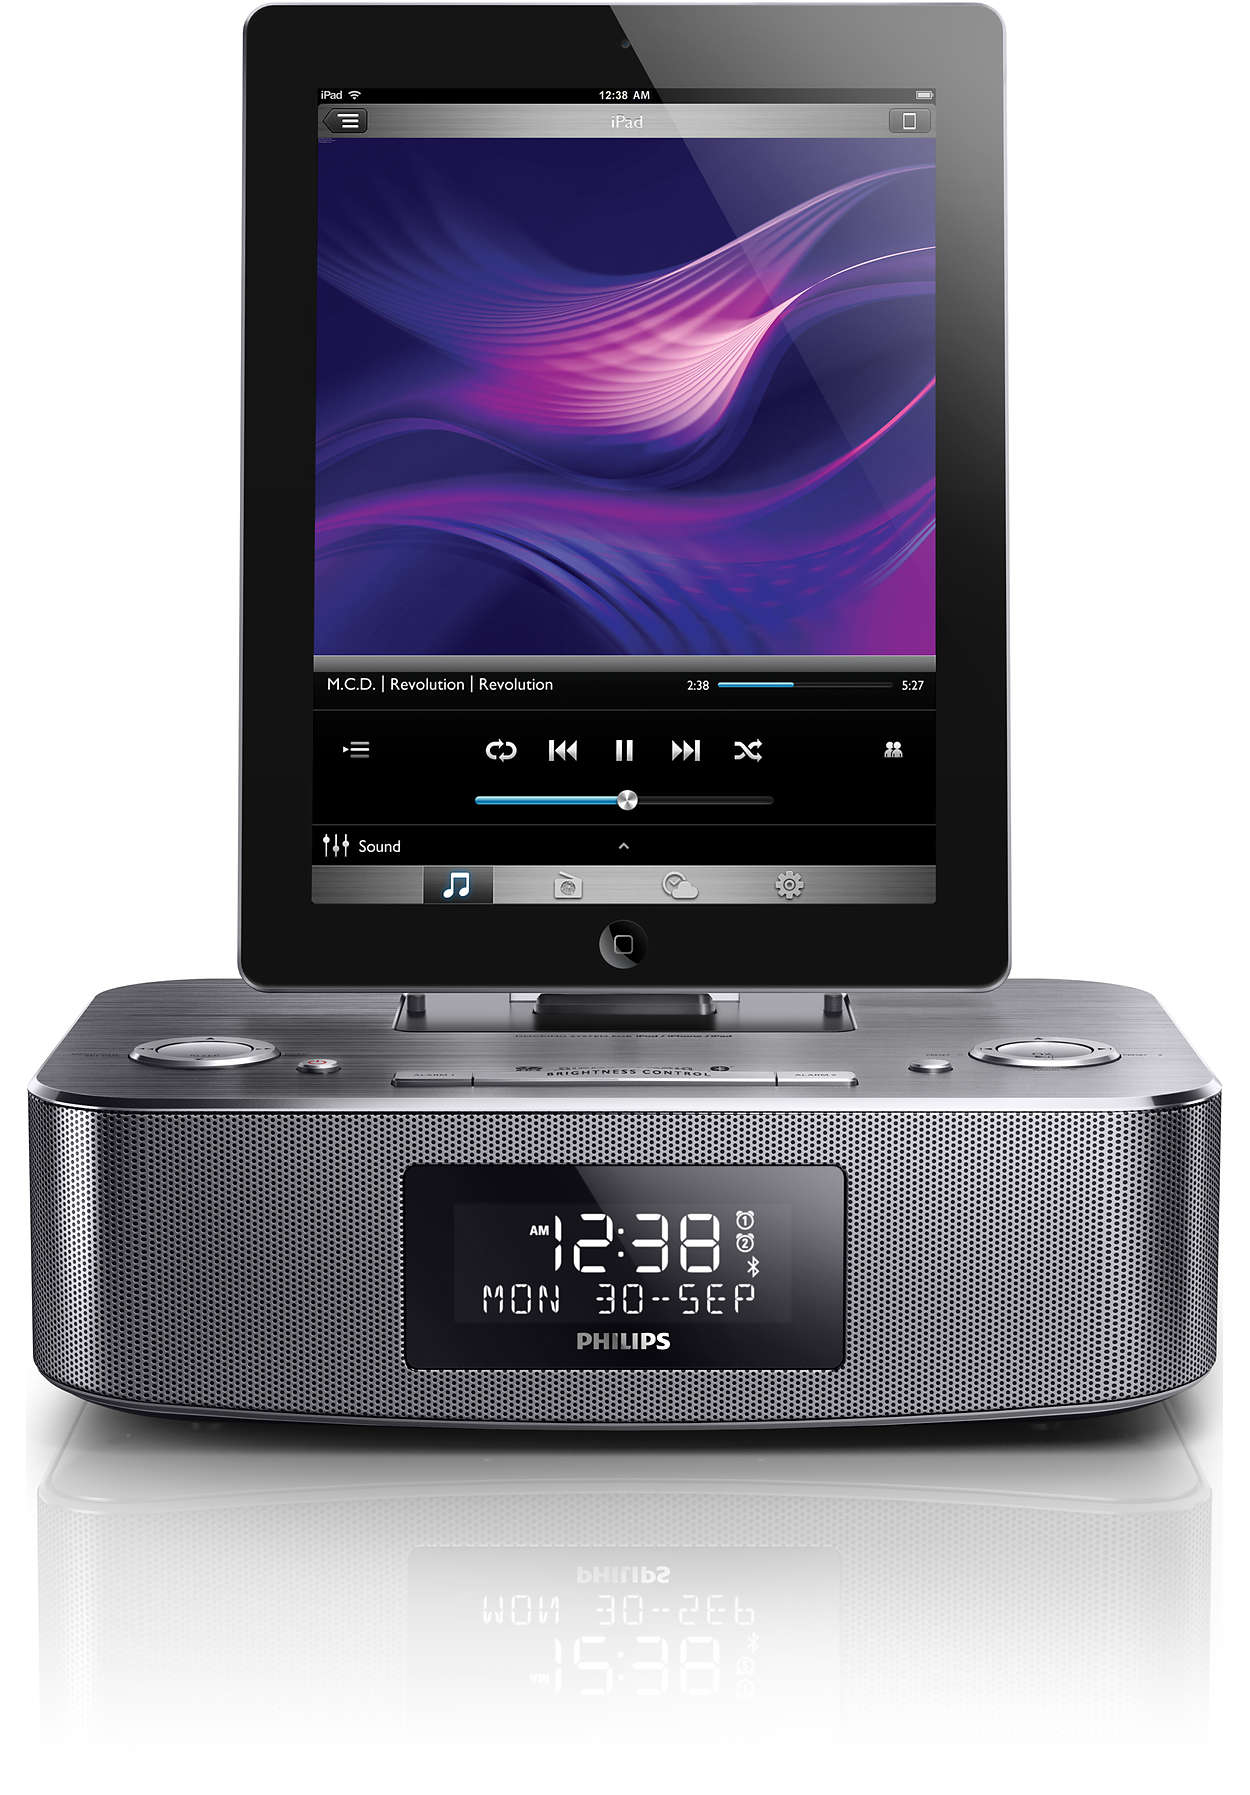 docking station with bluetooth dtb297 10 philips. Black Bedroom Furniture Sets. Home Design Ideas